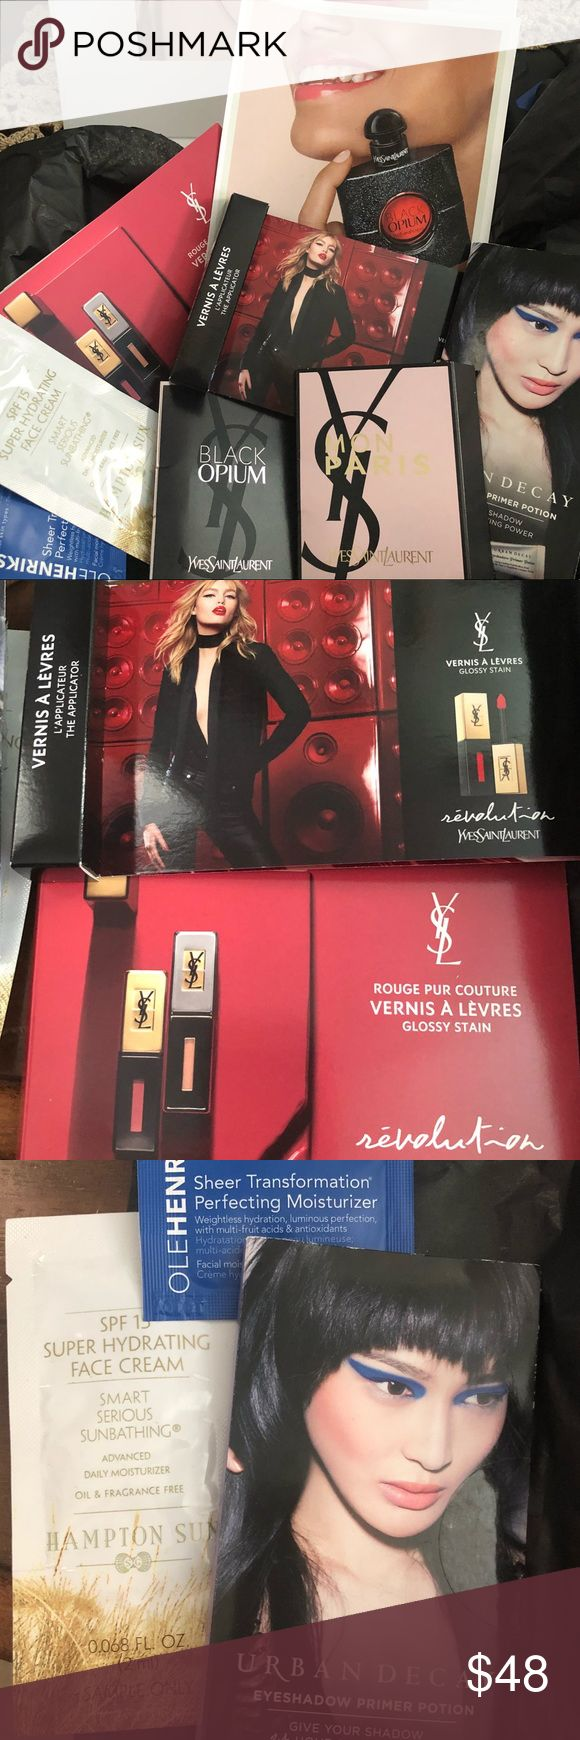 YSL samples box🎁 New YSL beauty samples, includes: 1 black opium stick lift to experience, 1 Glossy stain vernis #7, 9, 12, 47, 48, #51 with applicator, 1 Rouge # 12, 105, #200 with applicator, 1 Black Opium vial, 1 Mon Paris perfume vial, also 3 extra samples from Sephora (1 Hampton Sun SPF15 super hydrating face cream, 1 Ole Henriksen perfecting moisturizer, 1 Urban Decay eyeshadow primer potion original, eden, sin, anti aging everything comes in this beautiful magnetic box❤️💃🏻 Yves…